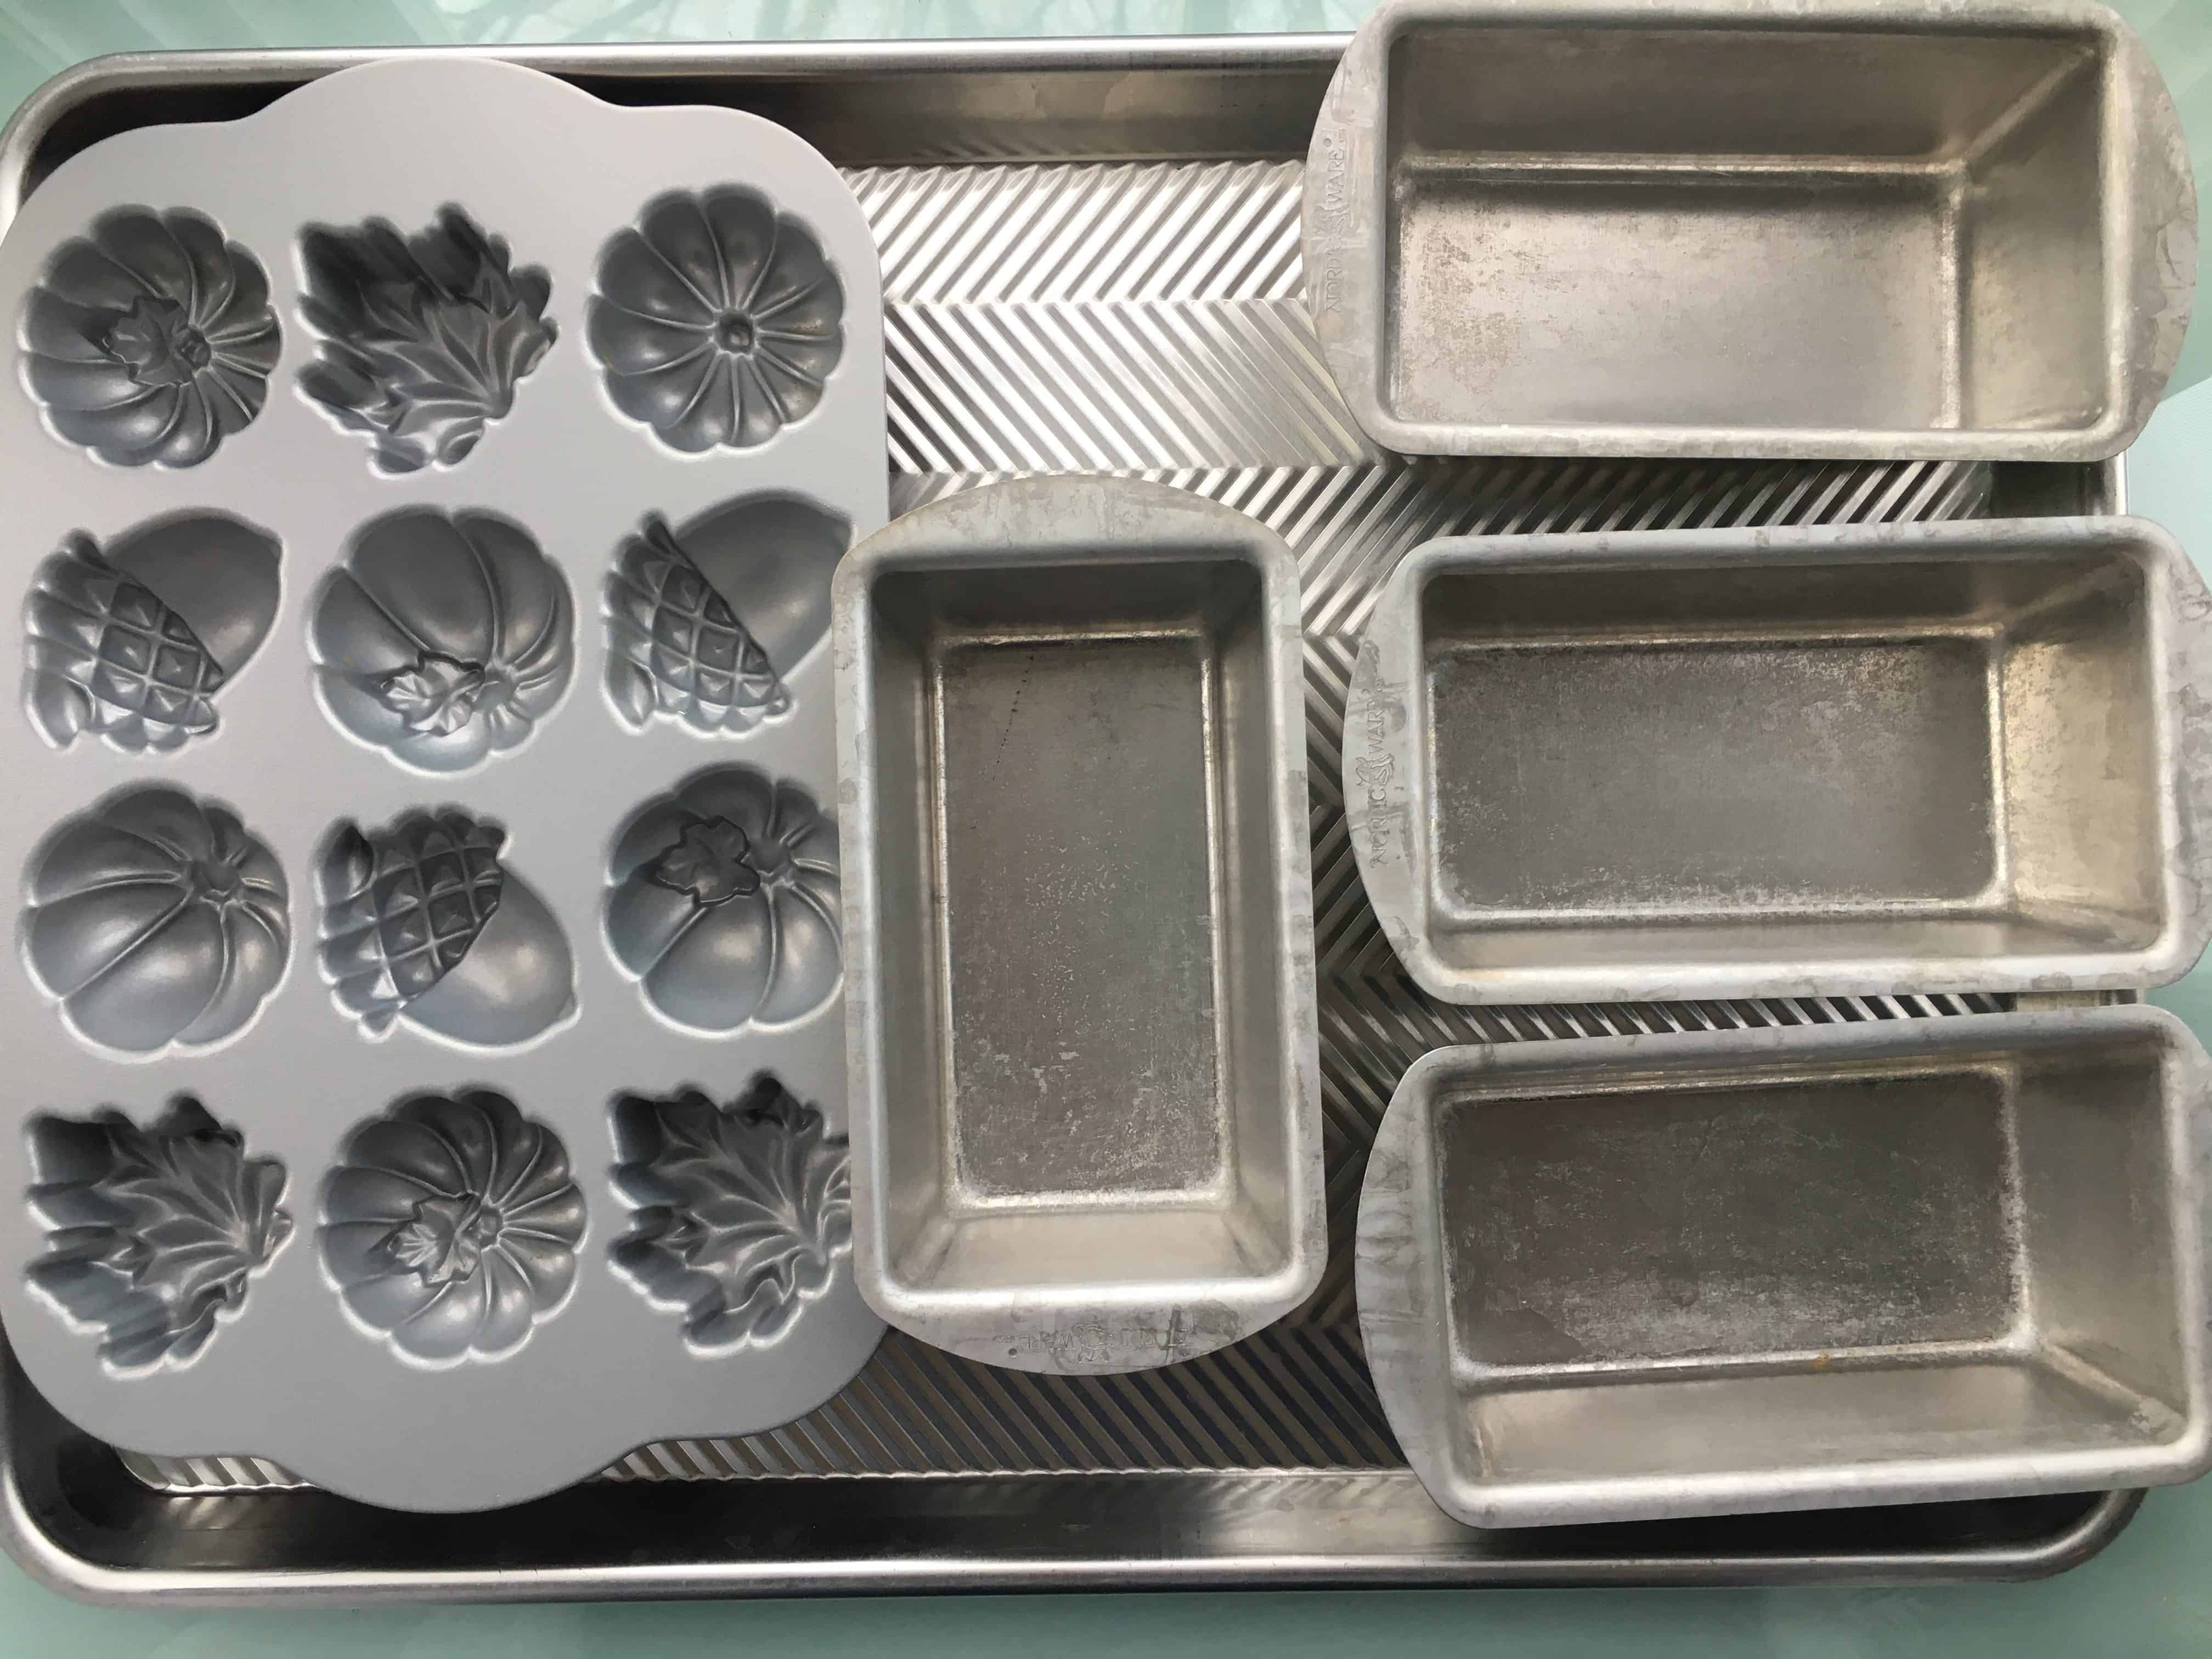 various molds and pans